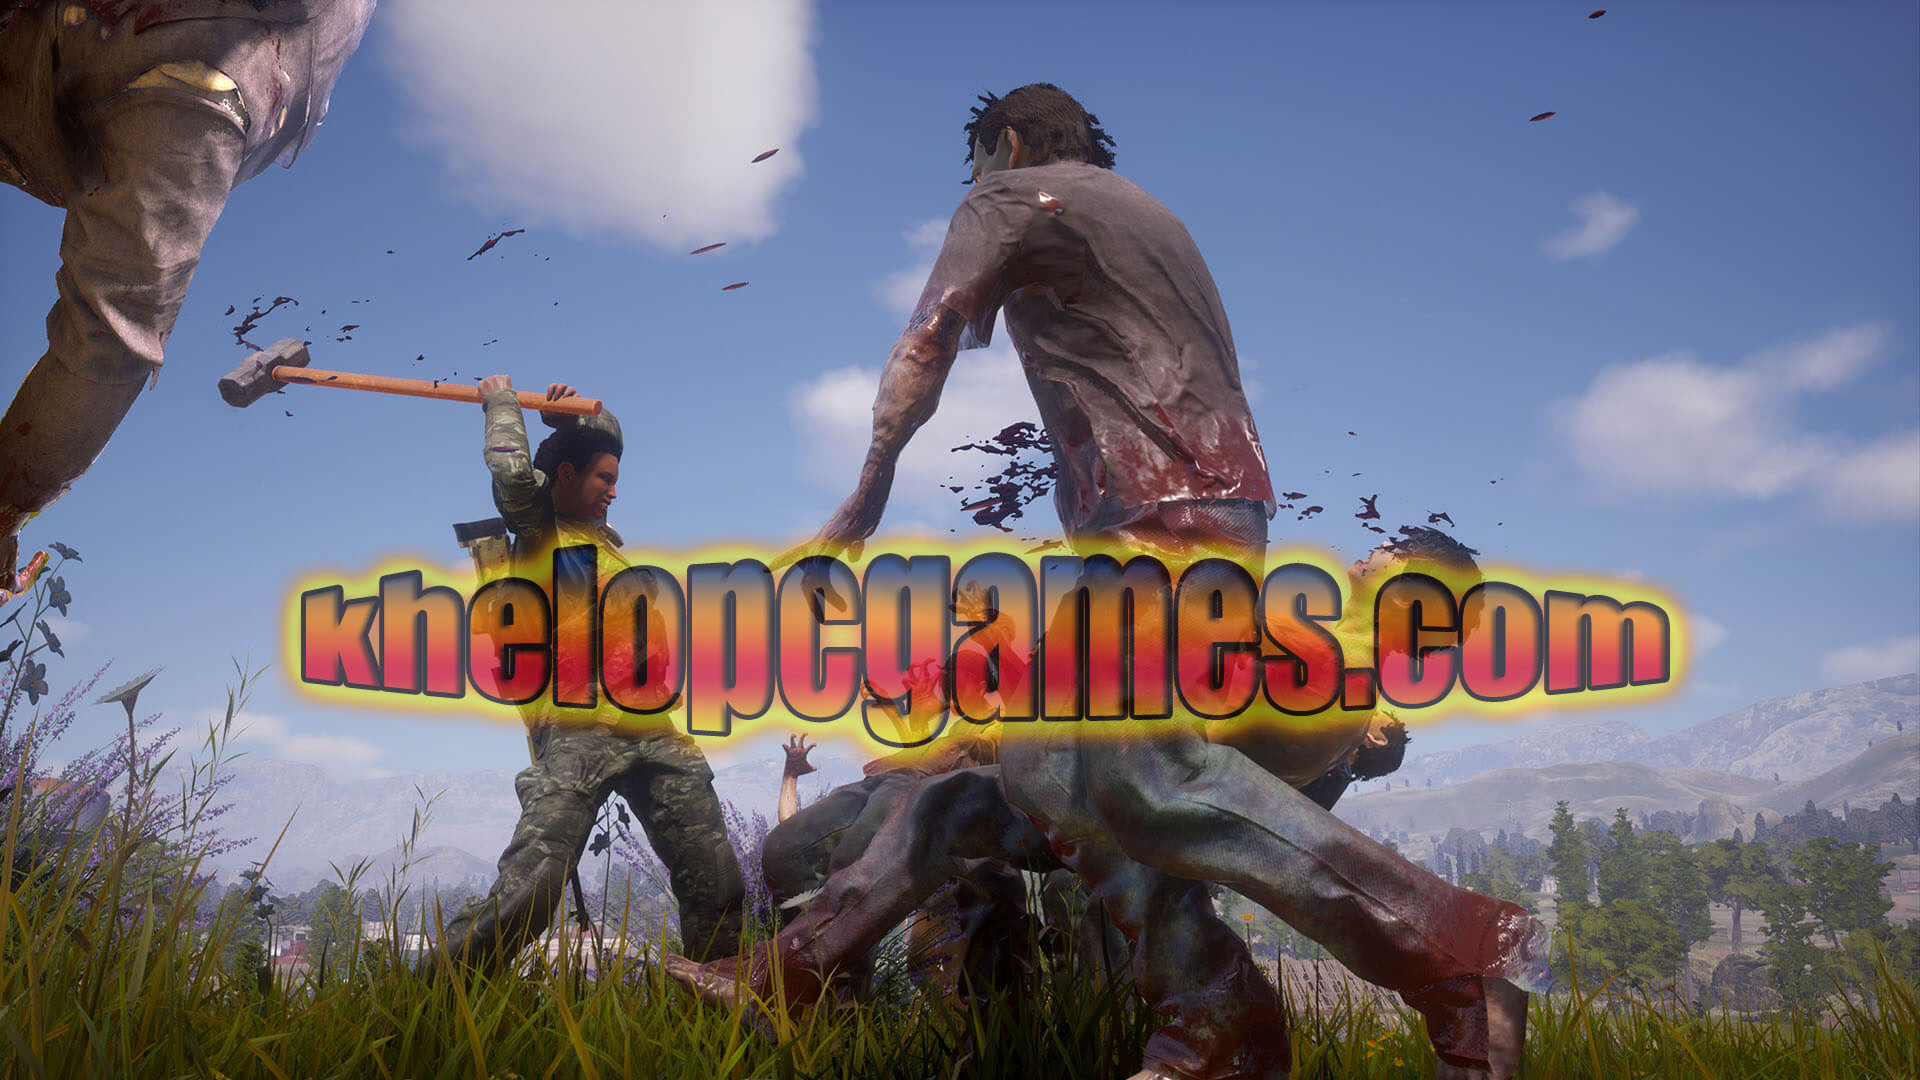 State of Decay 2: Juggernaut Edition Pc Game 2020 Free Download